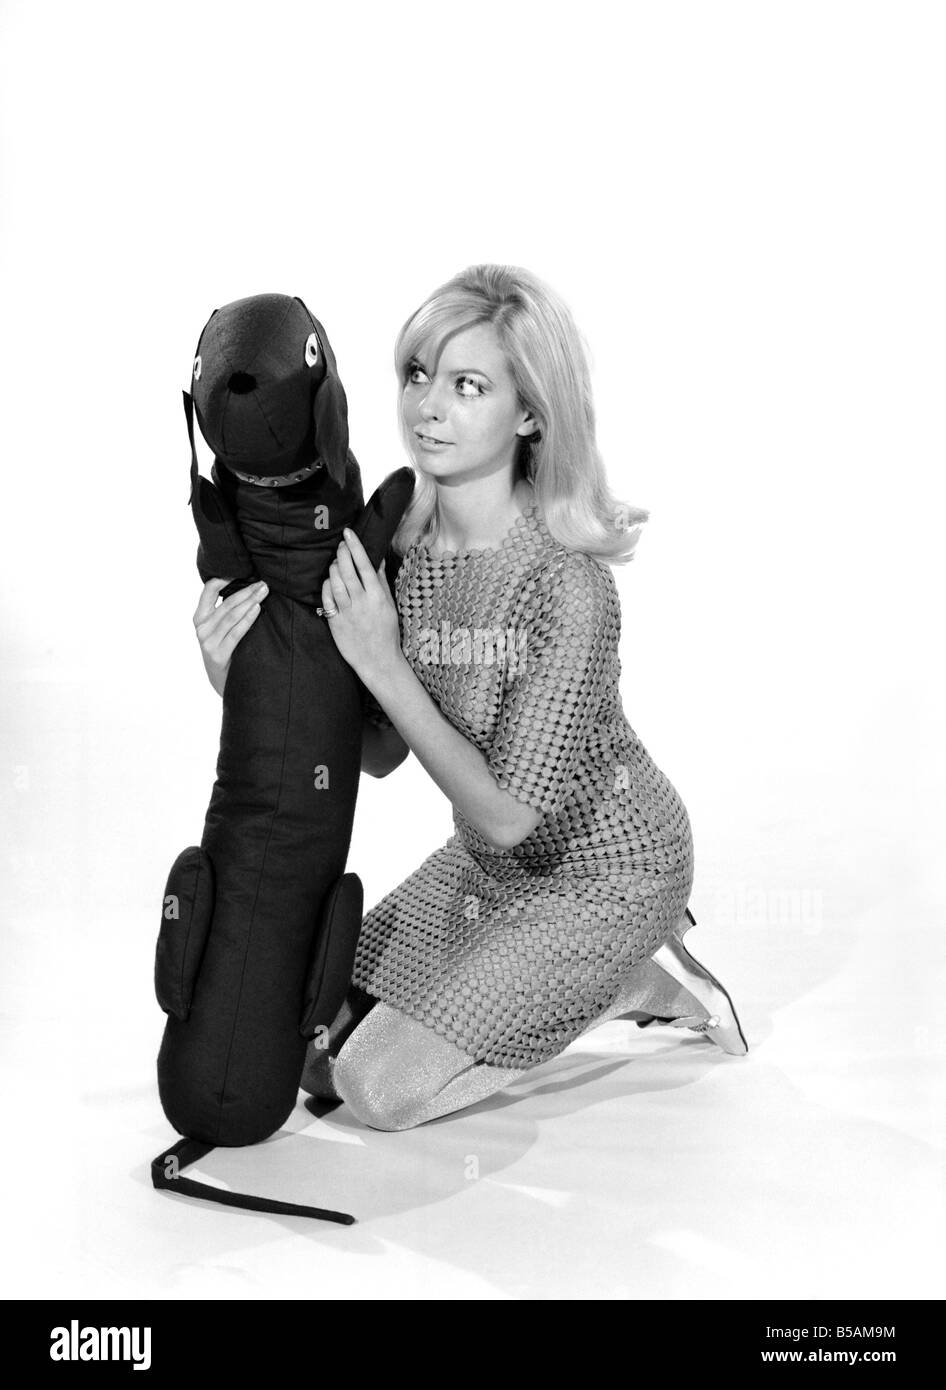 Model Anna Maria Greaves with Roly dog soft toy and draft excluder. 1959 D169-005 - Stock Image